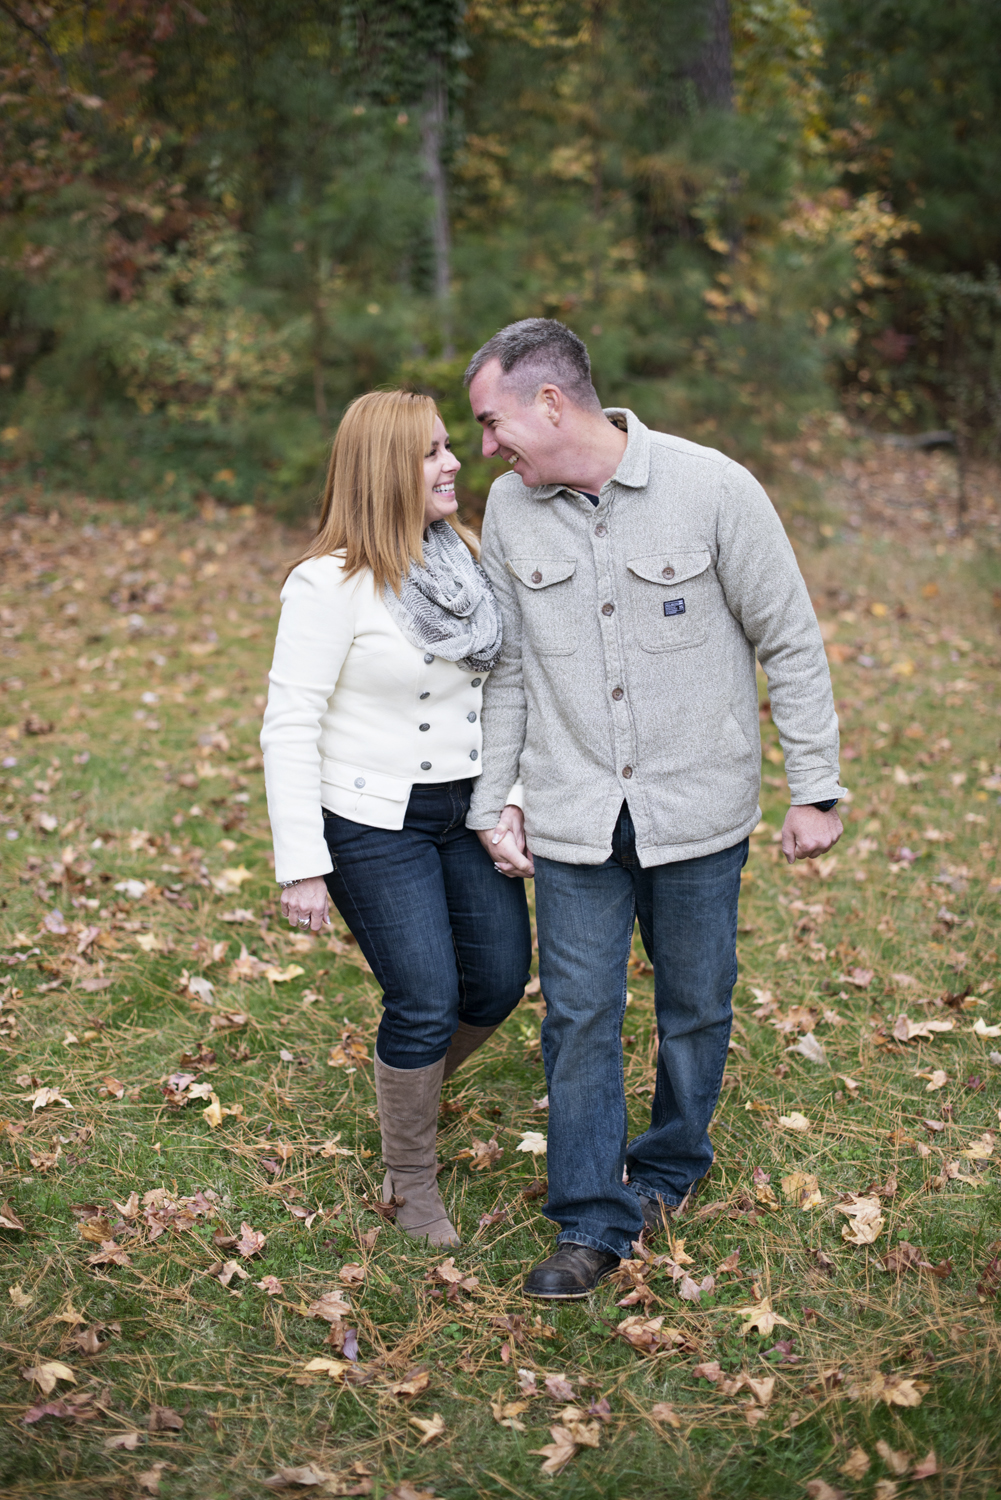 Cute ideas for fall engagement pictures with gray and white coats